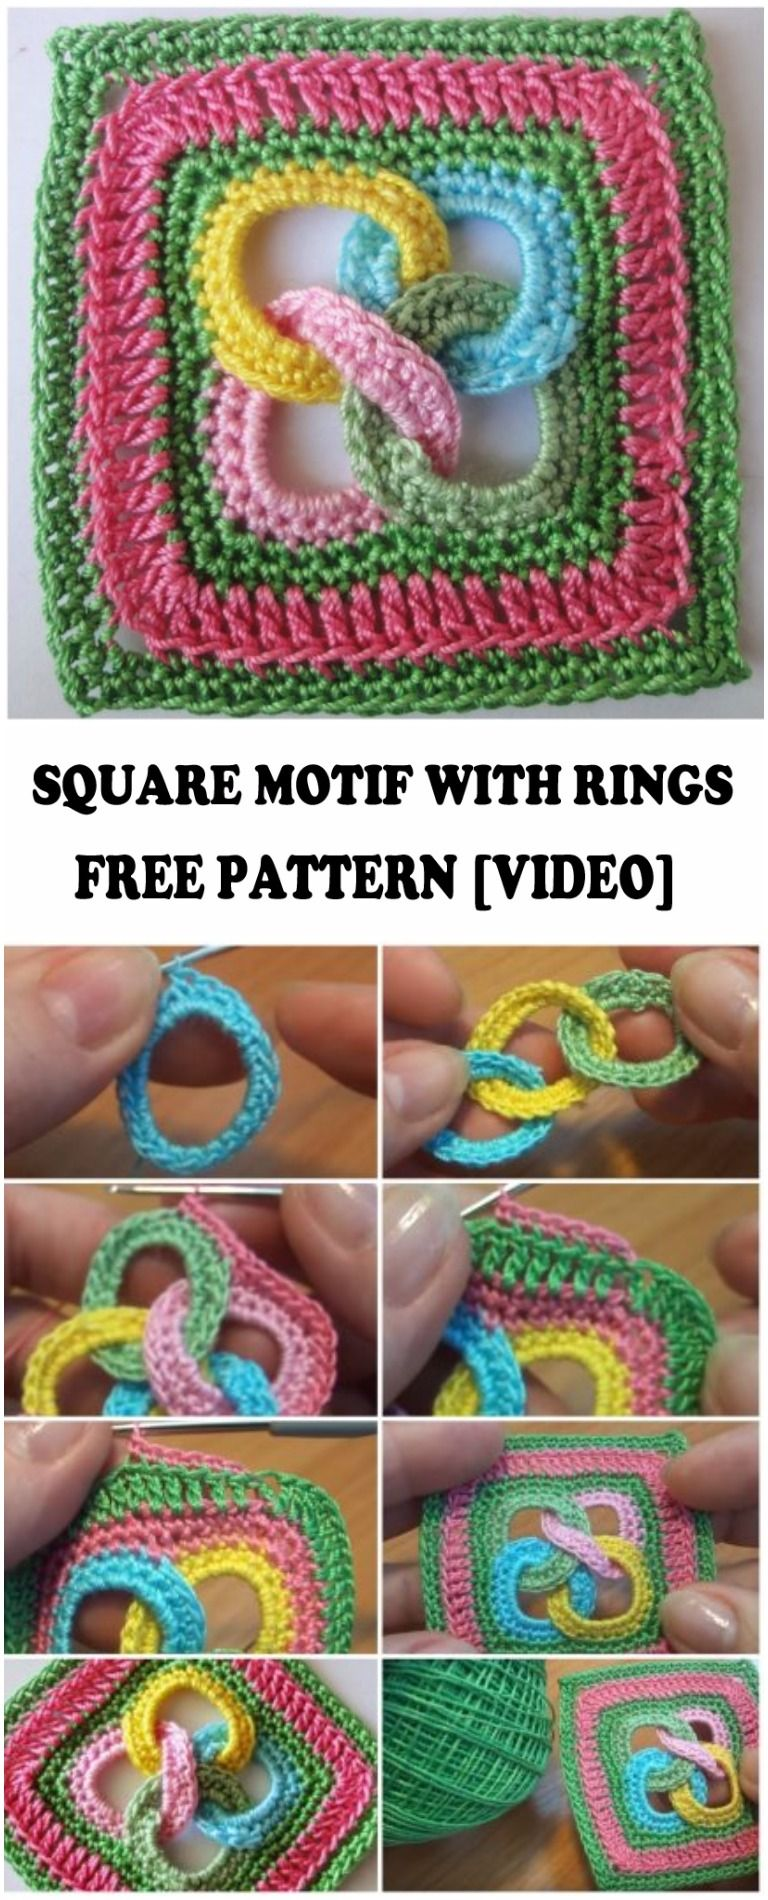 Learn To Crochet Square Motif With Rings | crochet | Pinterest ...